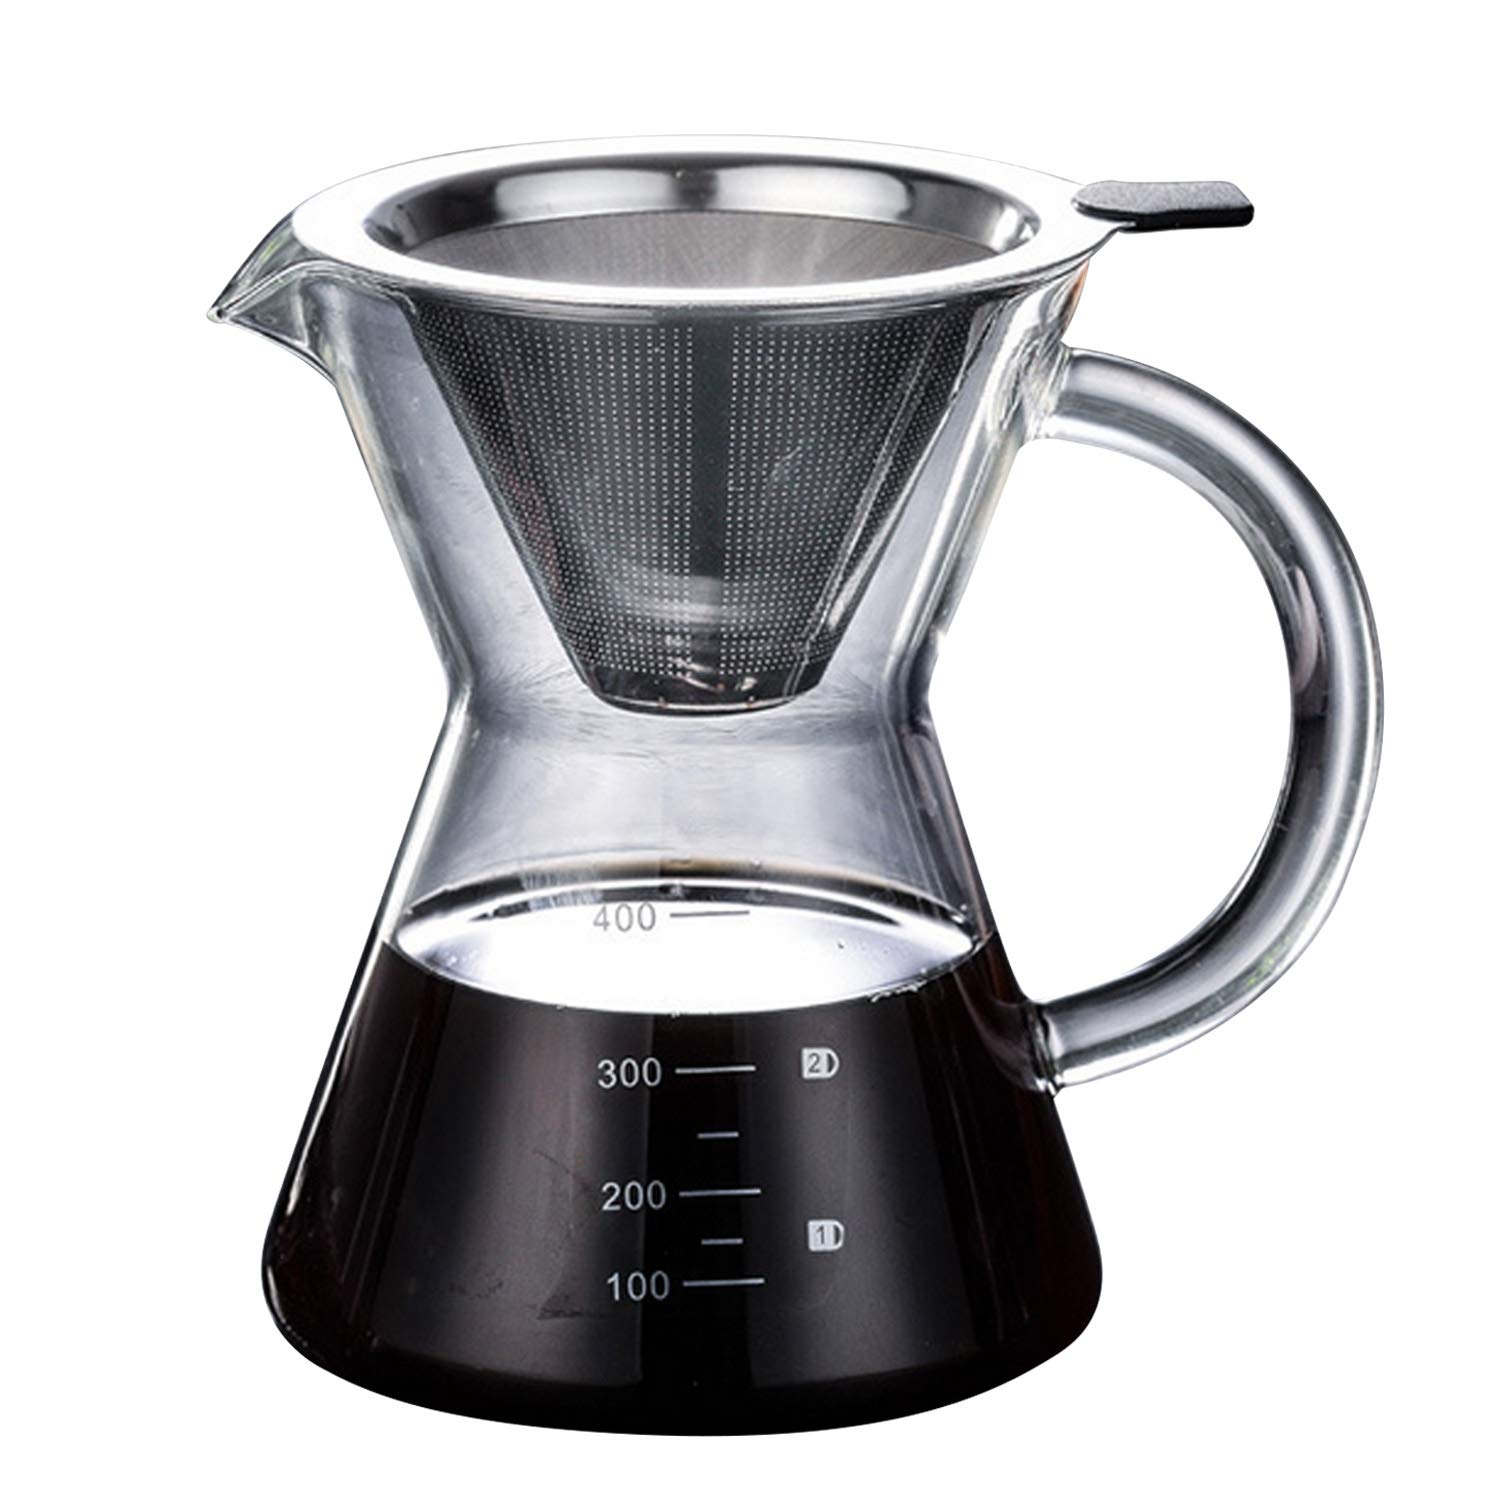 Coffee Maker, Glass Coffee Maker 400ml Large Capacity Heat Resistance High Boron Glass Pour Over Coffee Maker with Filter for Home Office Camping Apartment